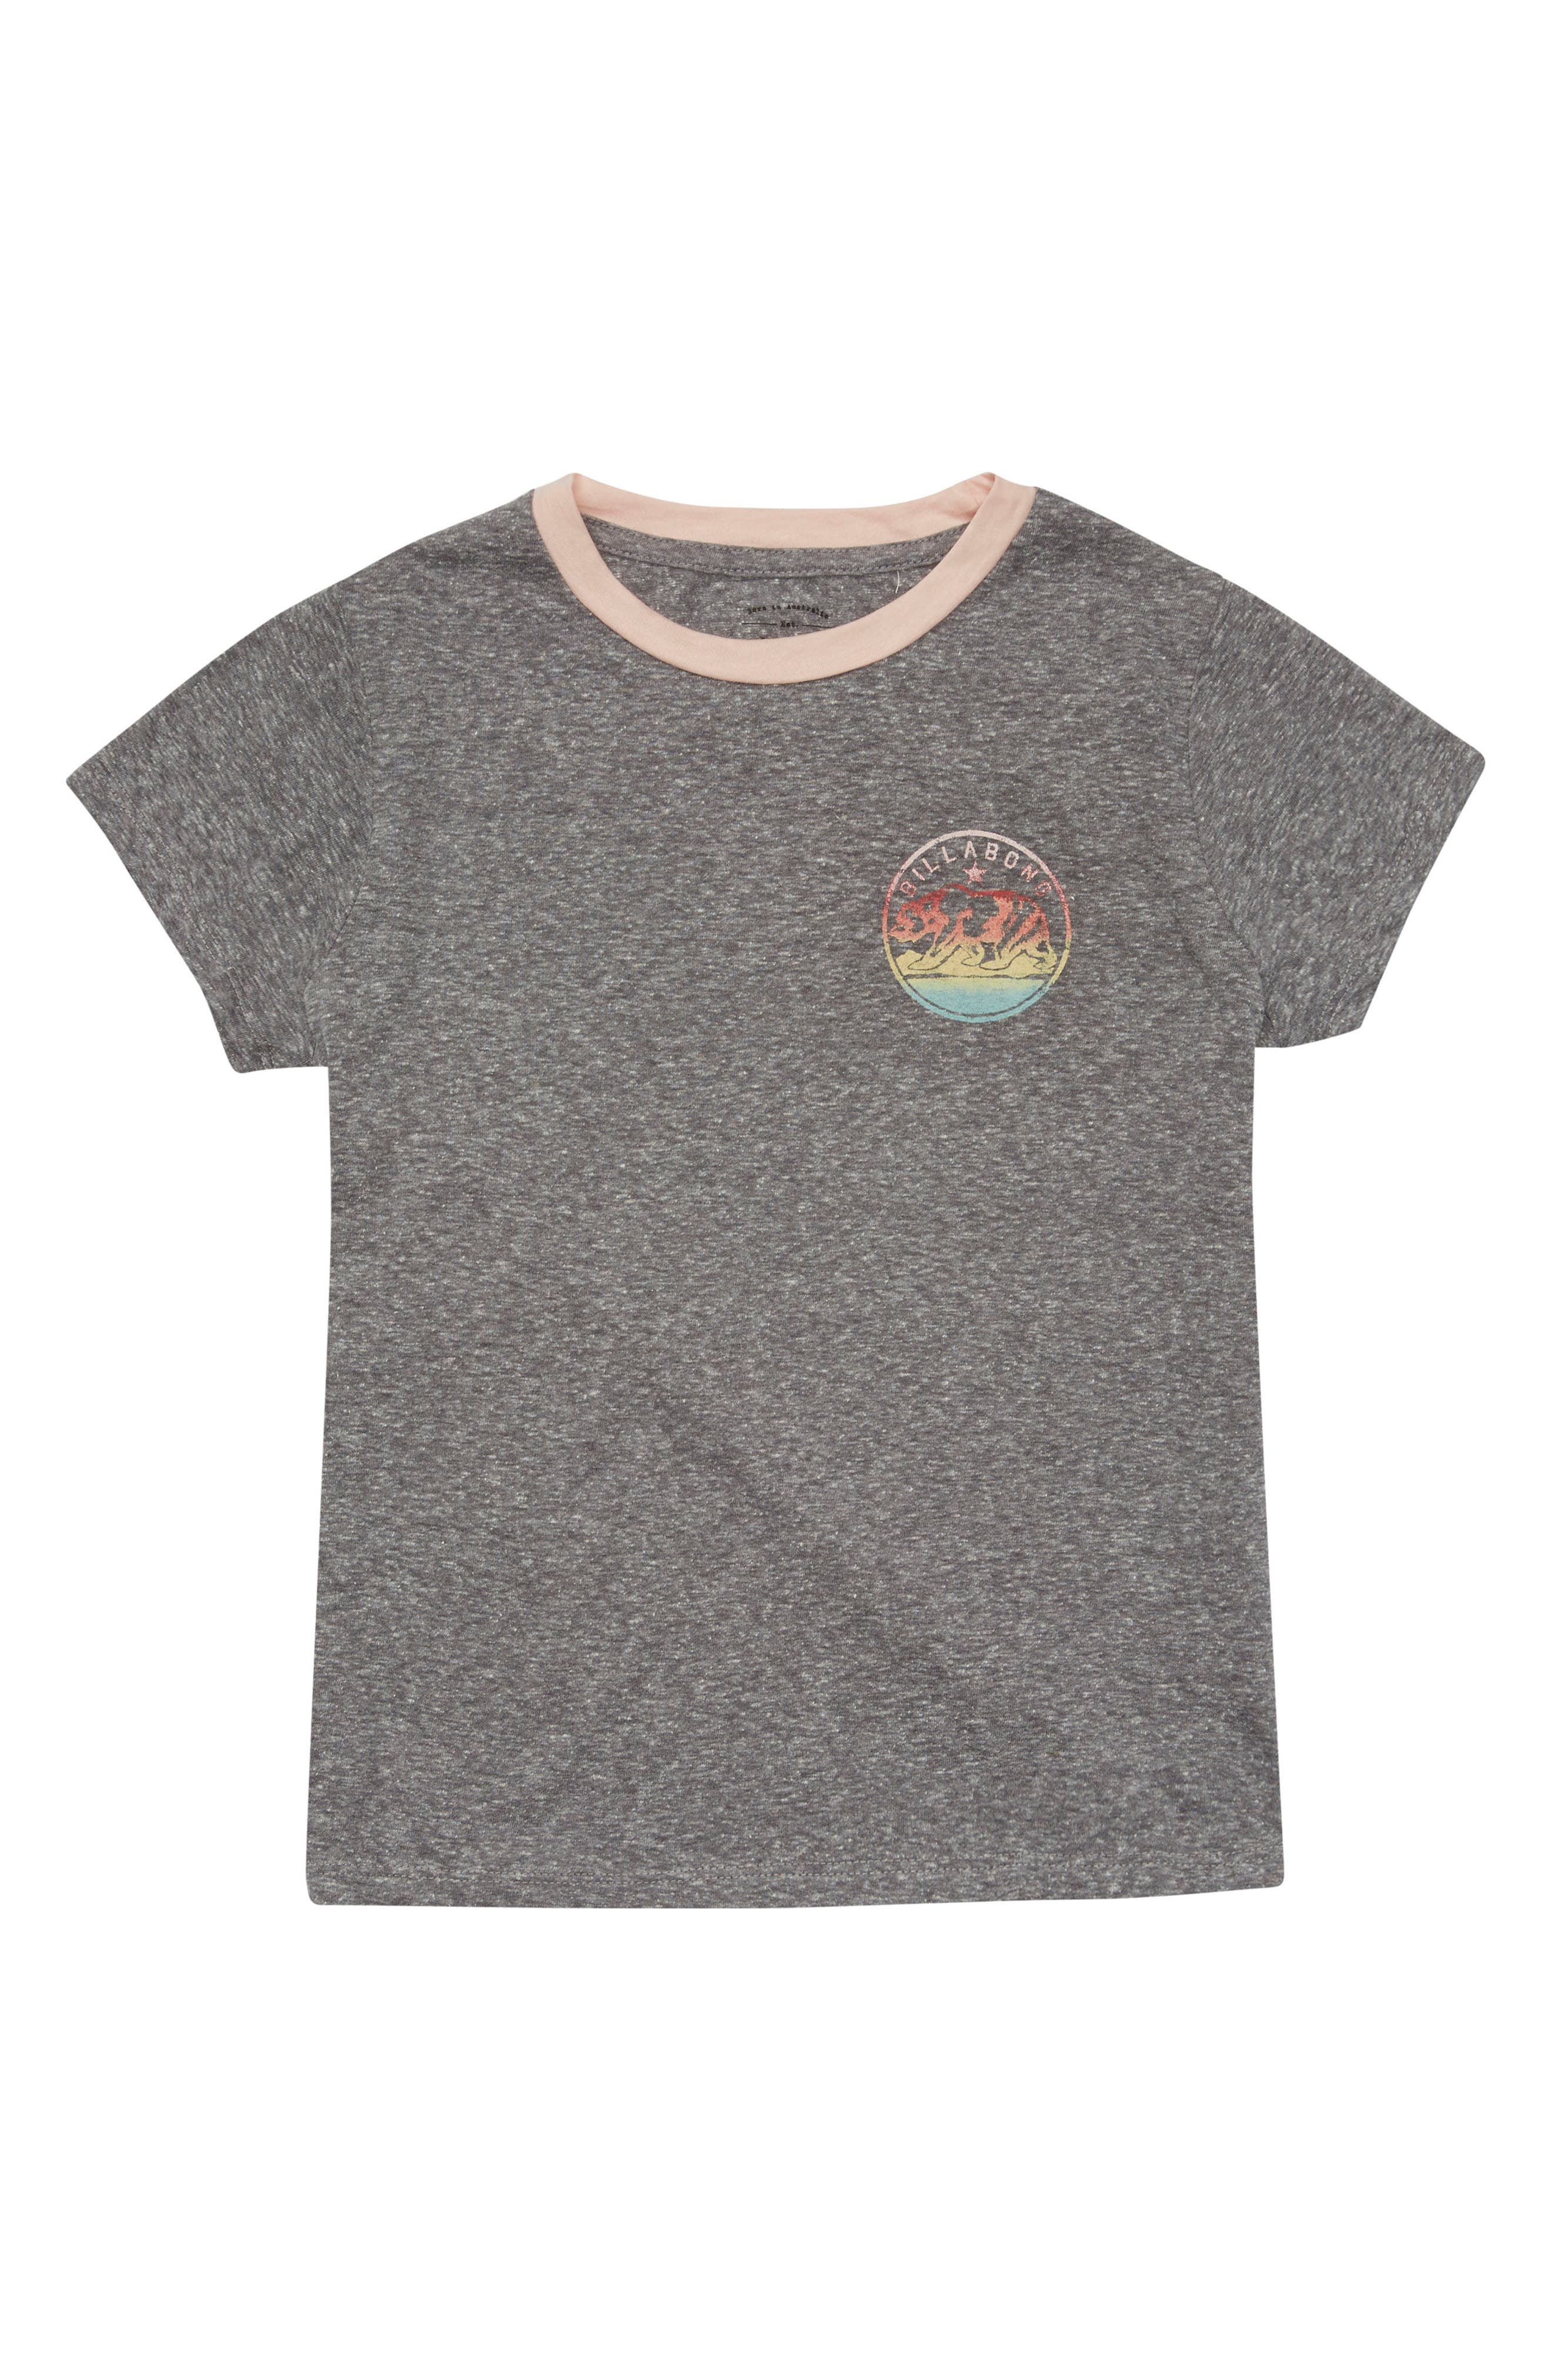 Bear Stamp Graphic Tee,                         Main,                         color, Dark Athletic Grey